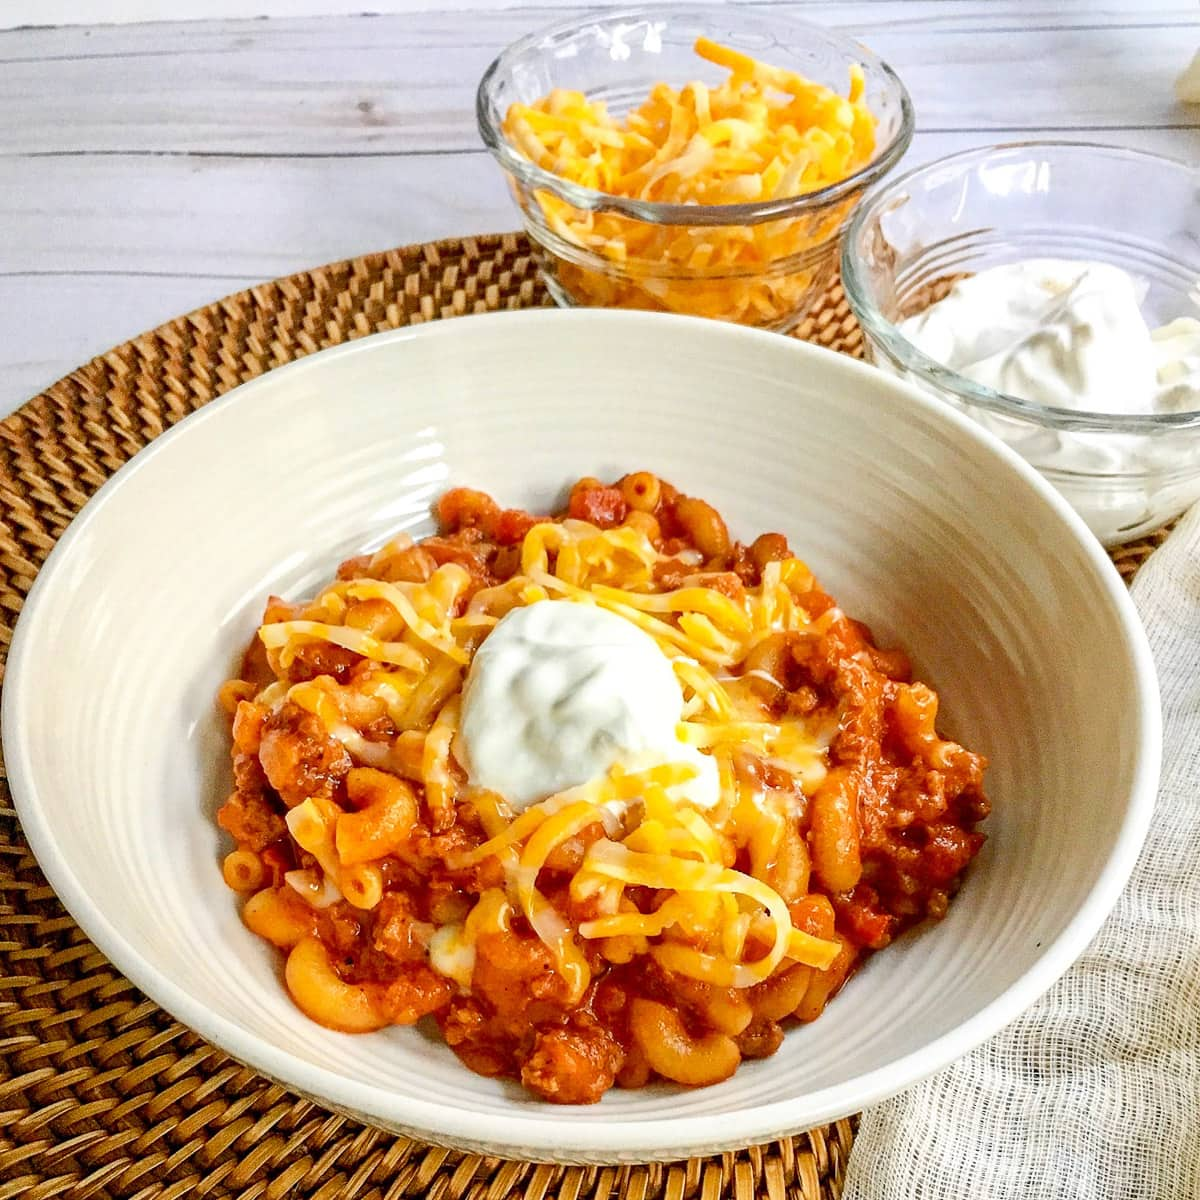 Instant Pot Chili Mac with Cheese